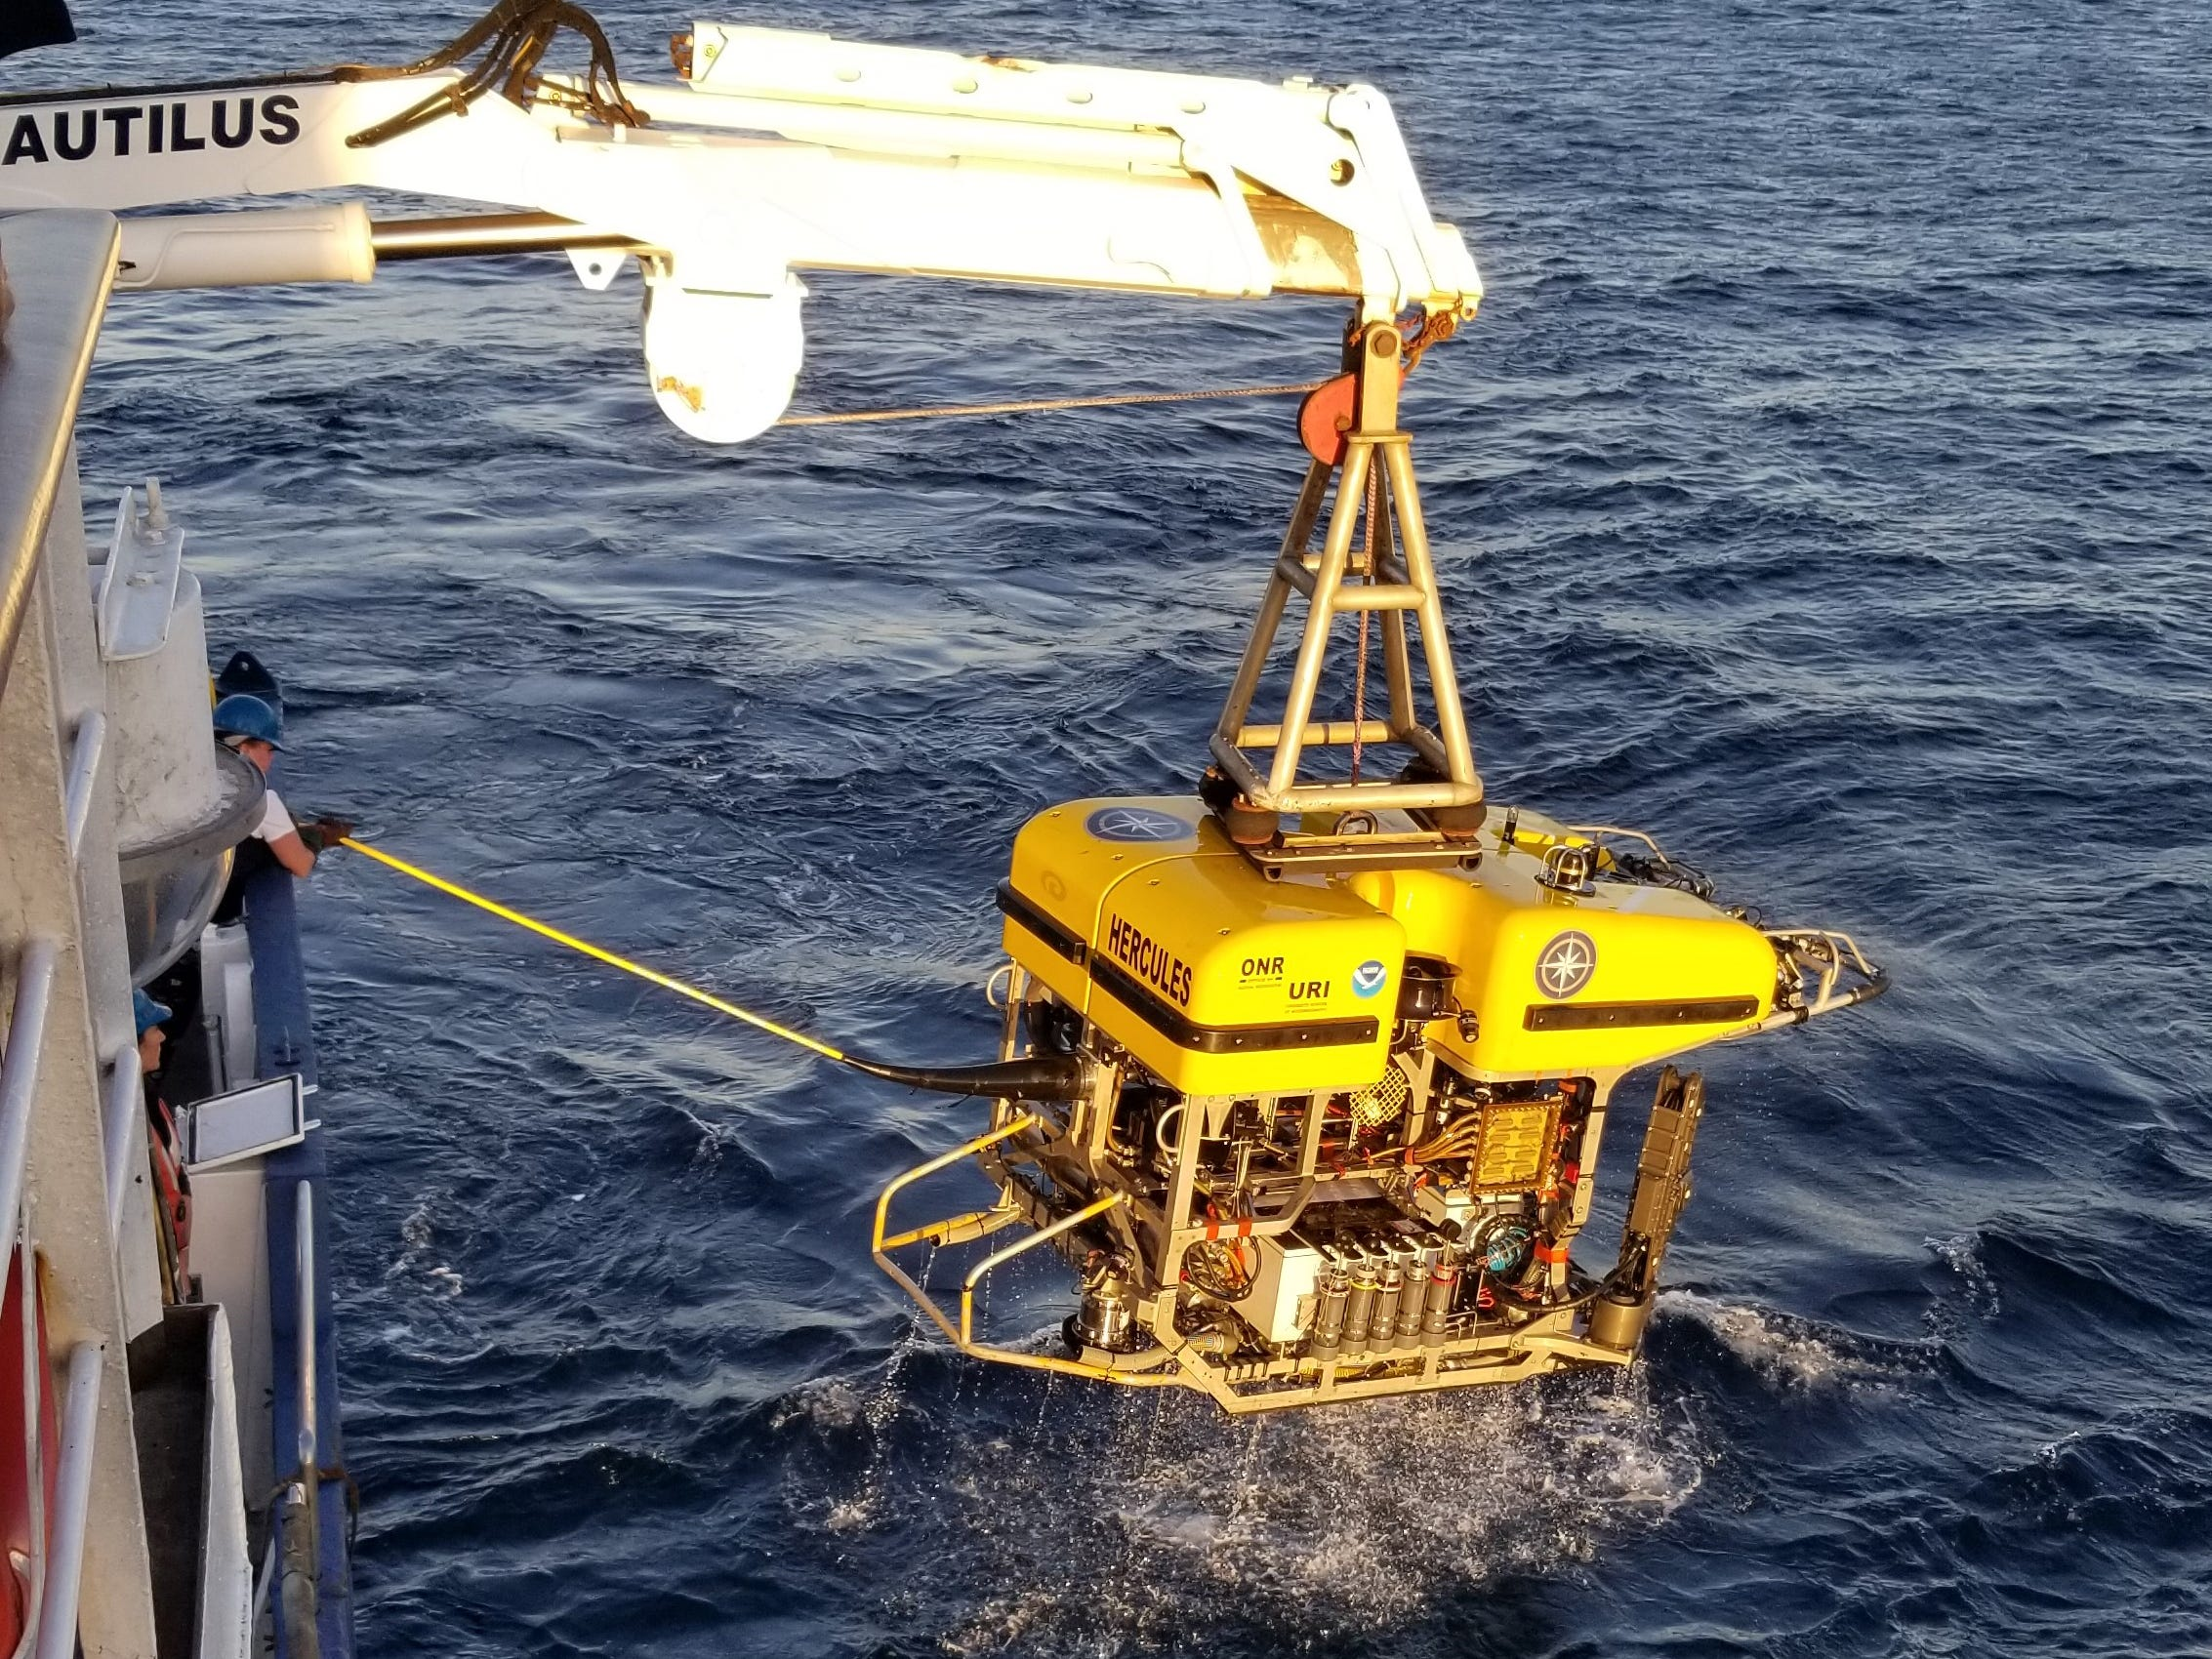 Hercules is recovered from the depths, completing the final dive of this Nautilus cruise.